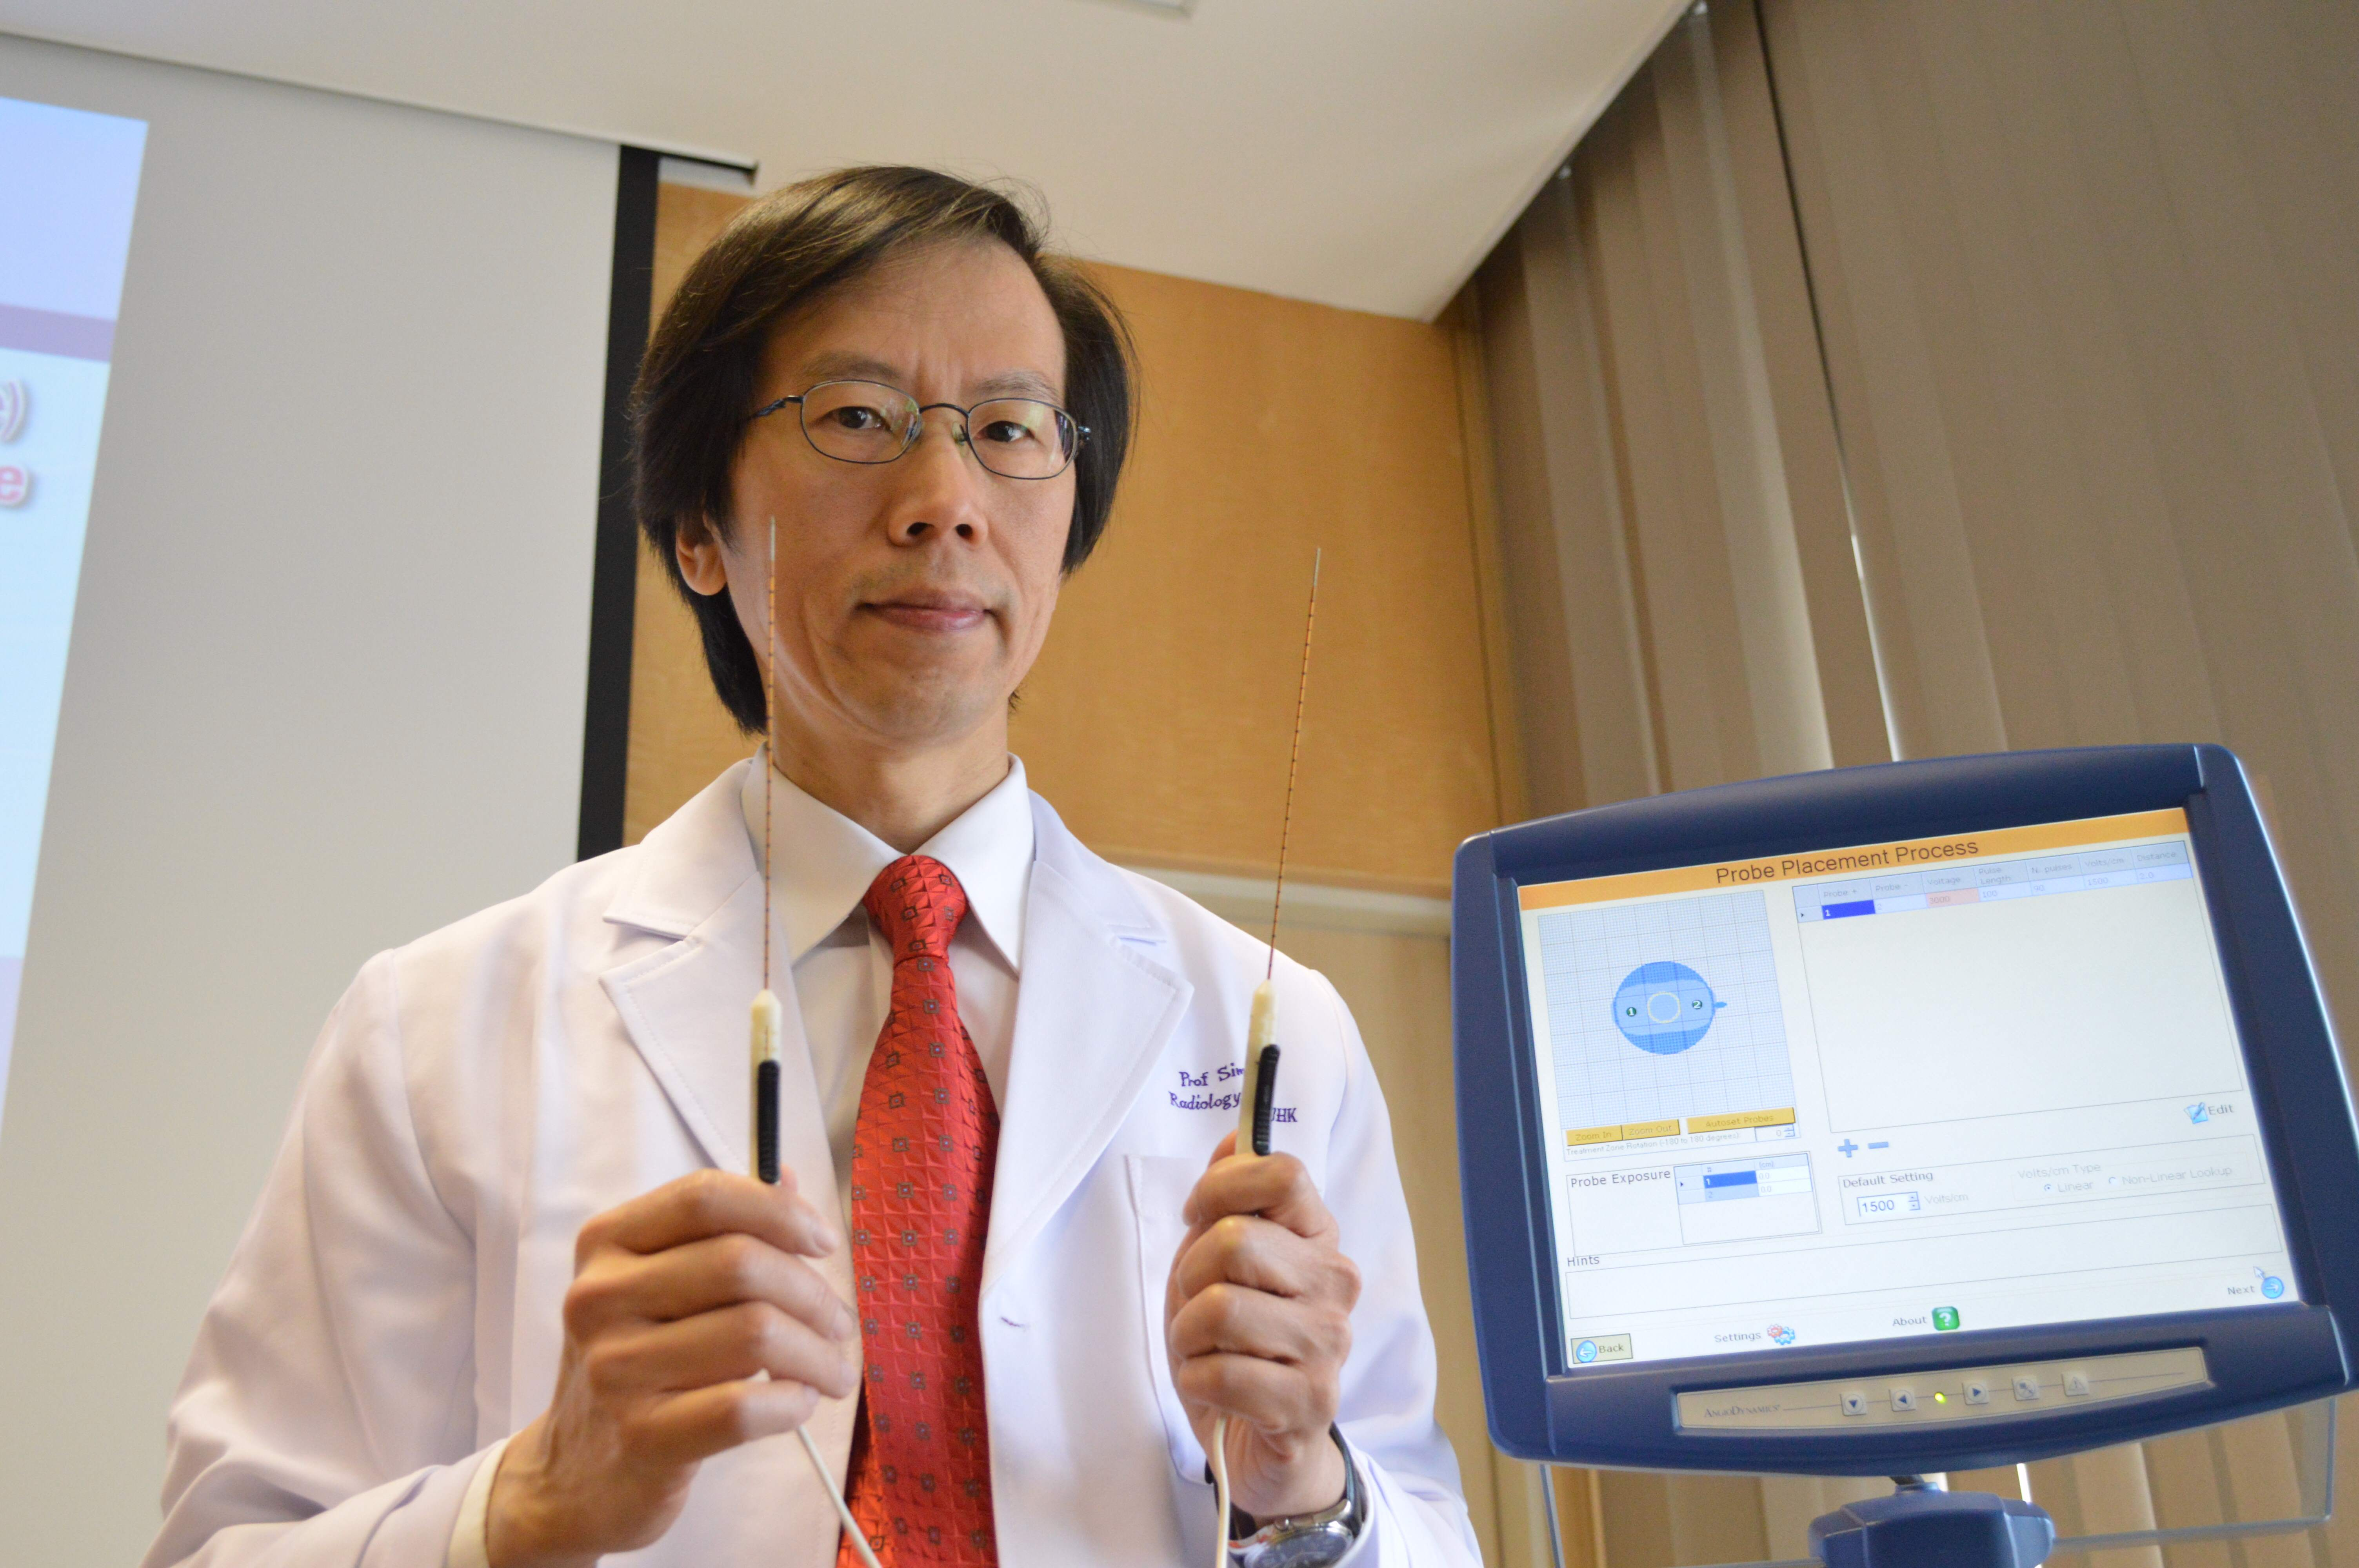 Prof. Simon Yu, Director of Vascular and Interventional Radiology Foundation Clinical Science Center and Professor of Department of Imaging and Interventional Radiology, CUHK successfully conducted the animal study and clinical case of percutaneous Nanoknife.